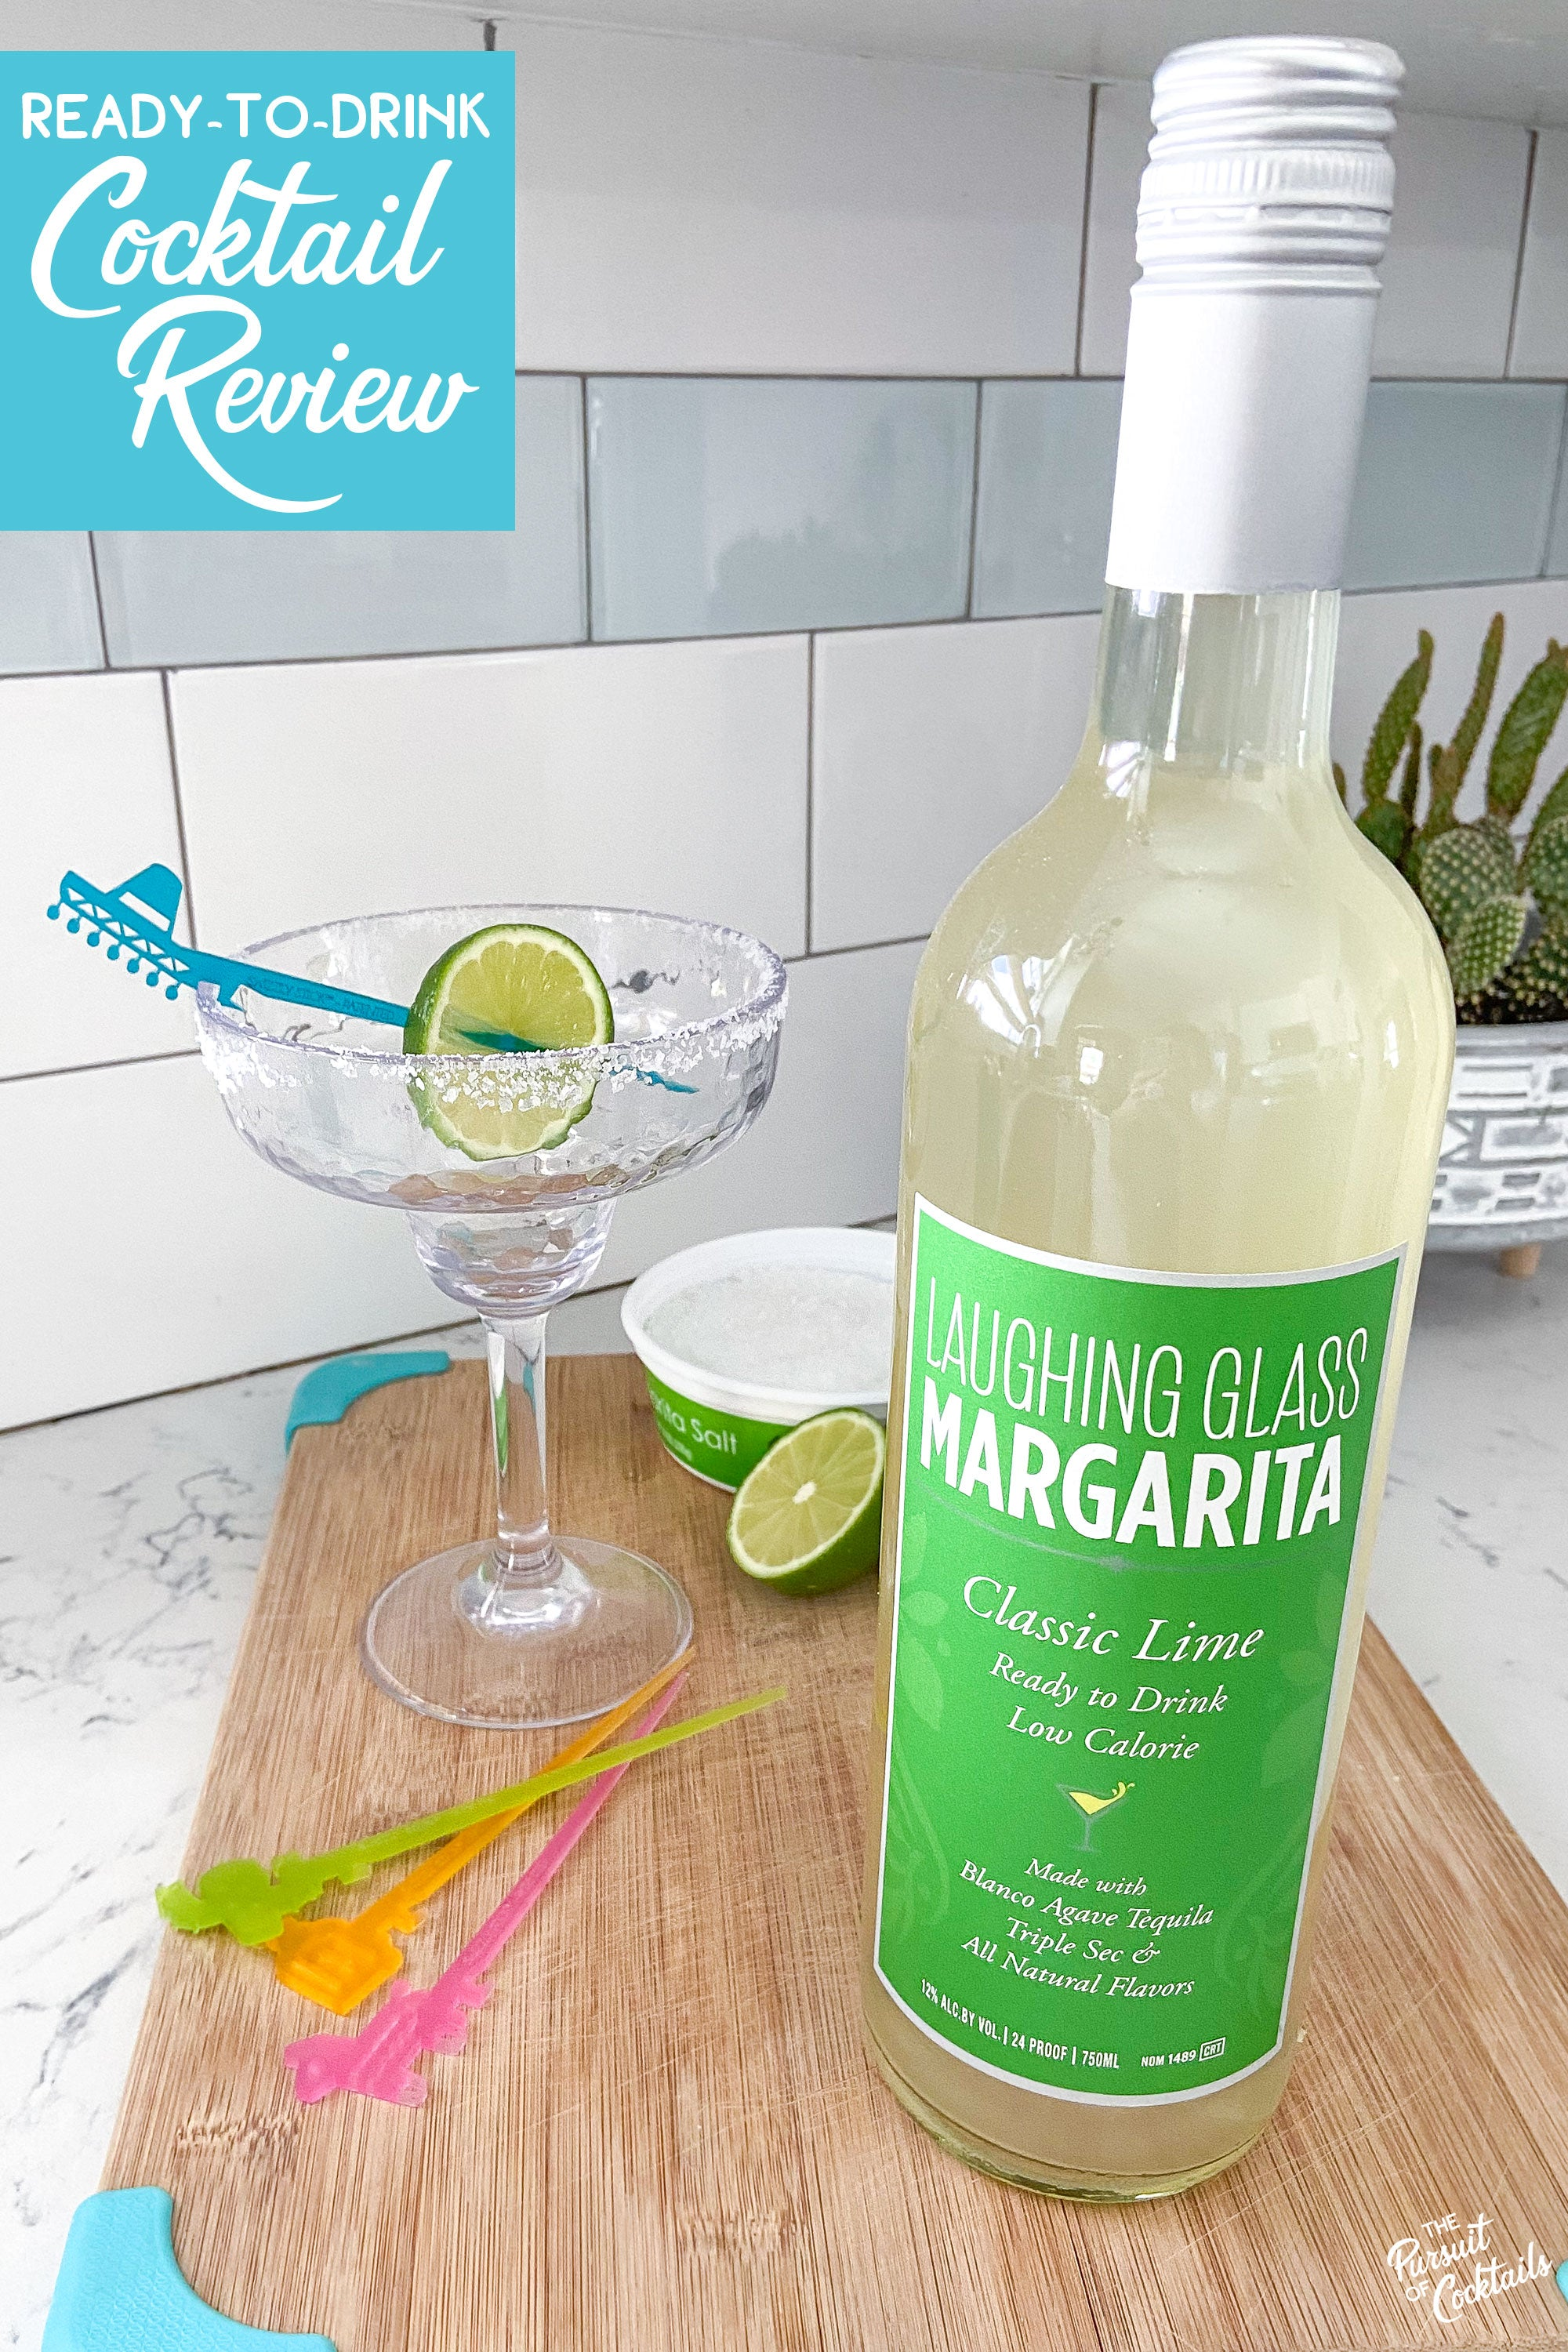 Laughing Glass ready to drink margarita review by The Pursuit of Cocktails